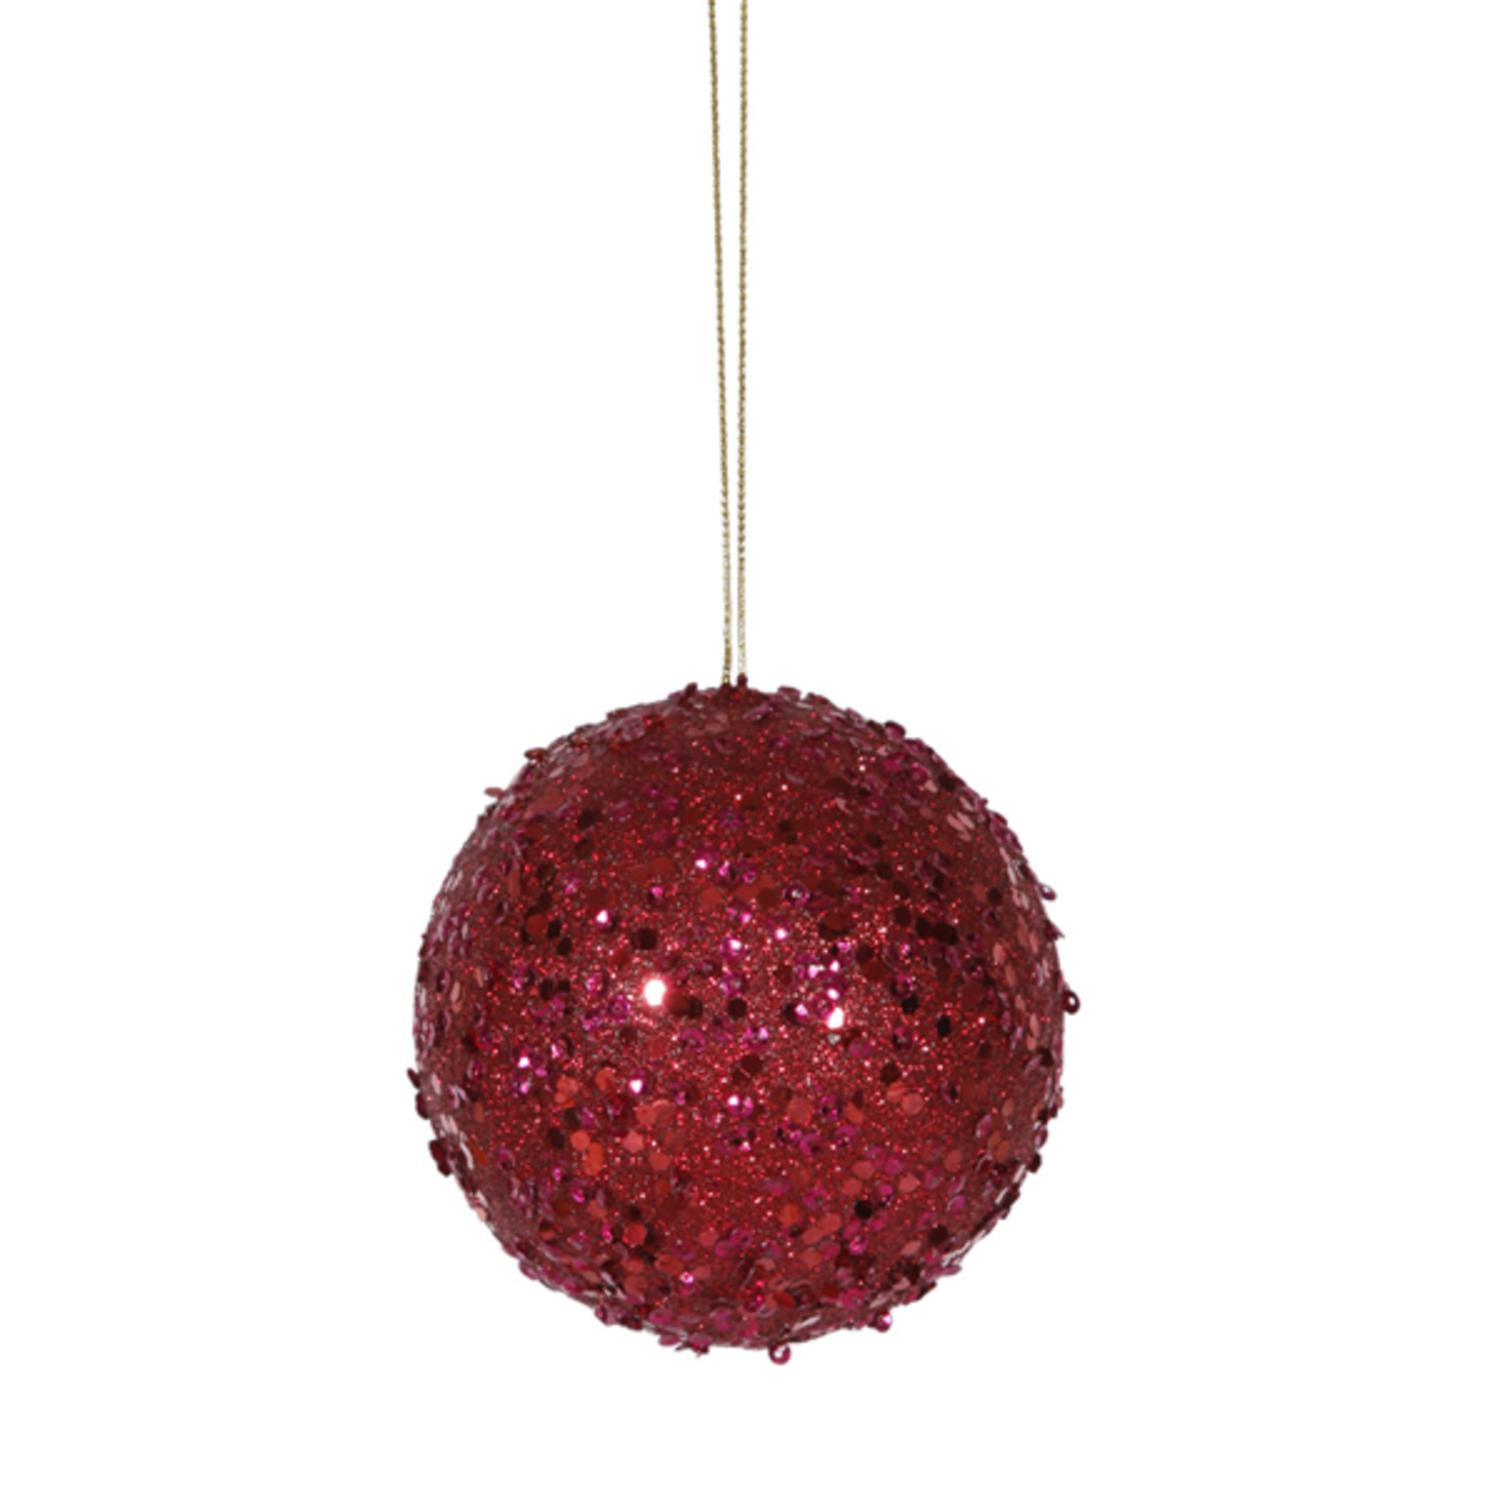 Fancy Deep Red Holographic Glitter Drenched Christmas Ball Ornament 3""